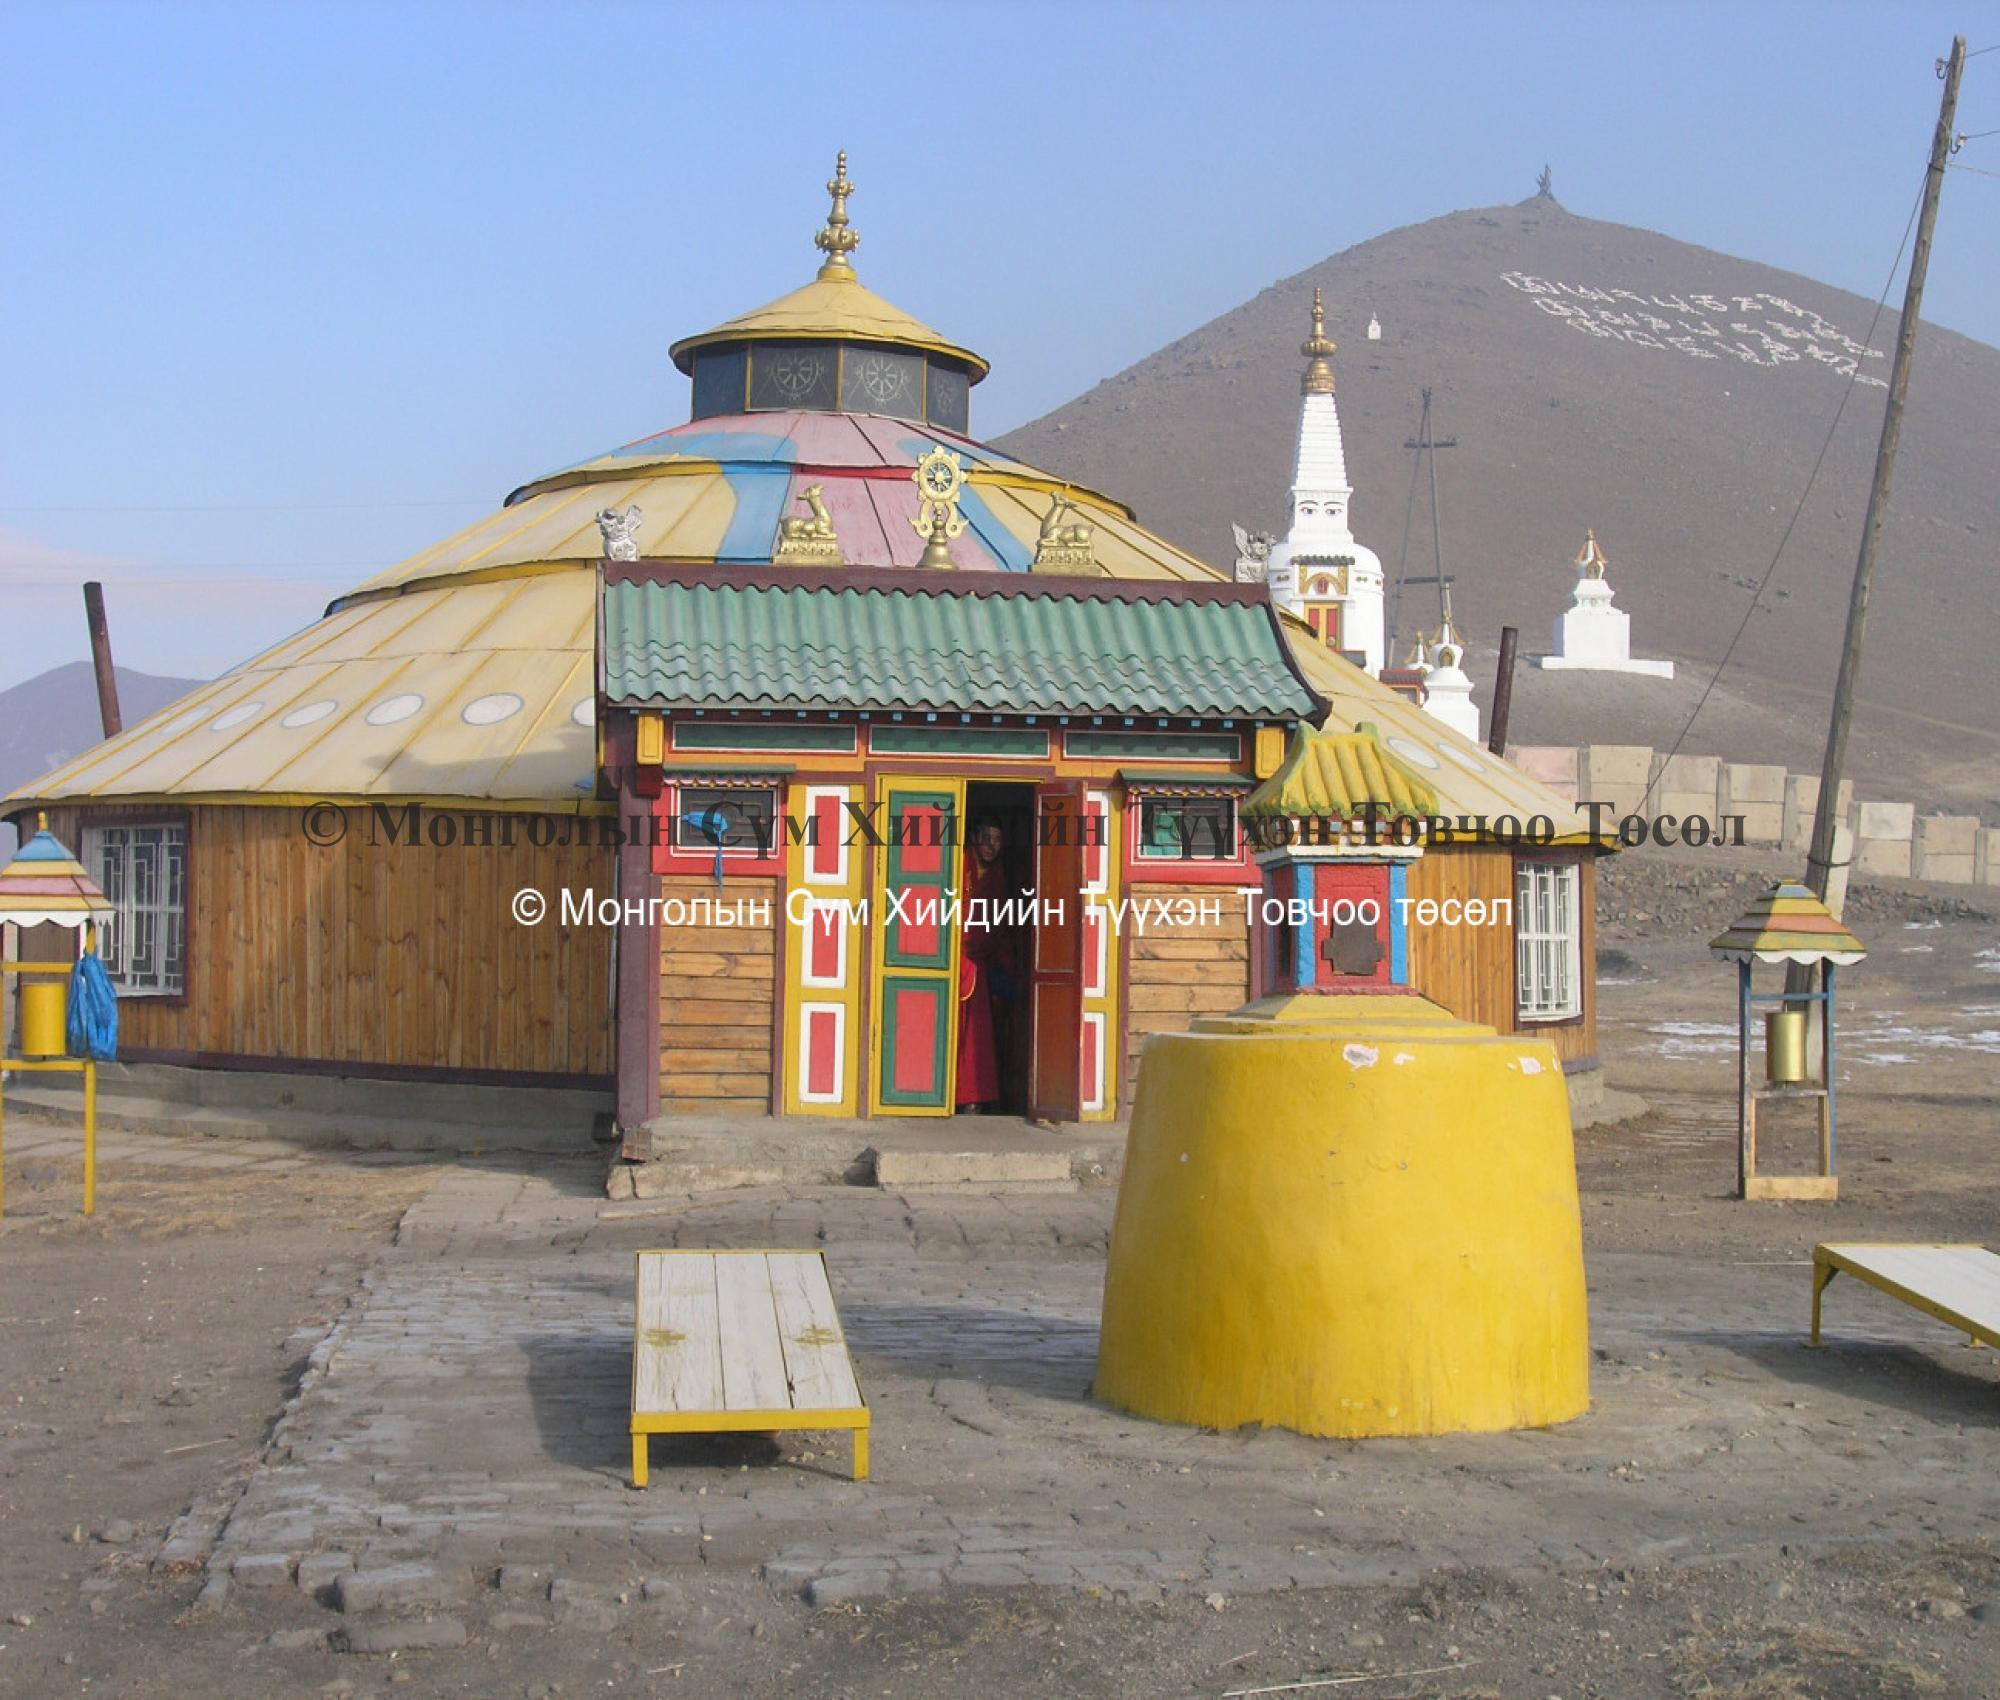 Ger Temple with Jarankhashar stupa behind and the